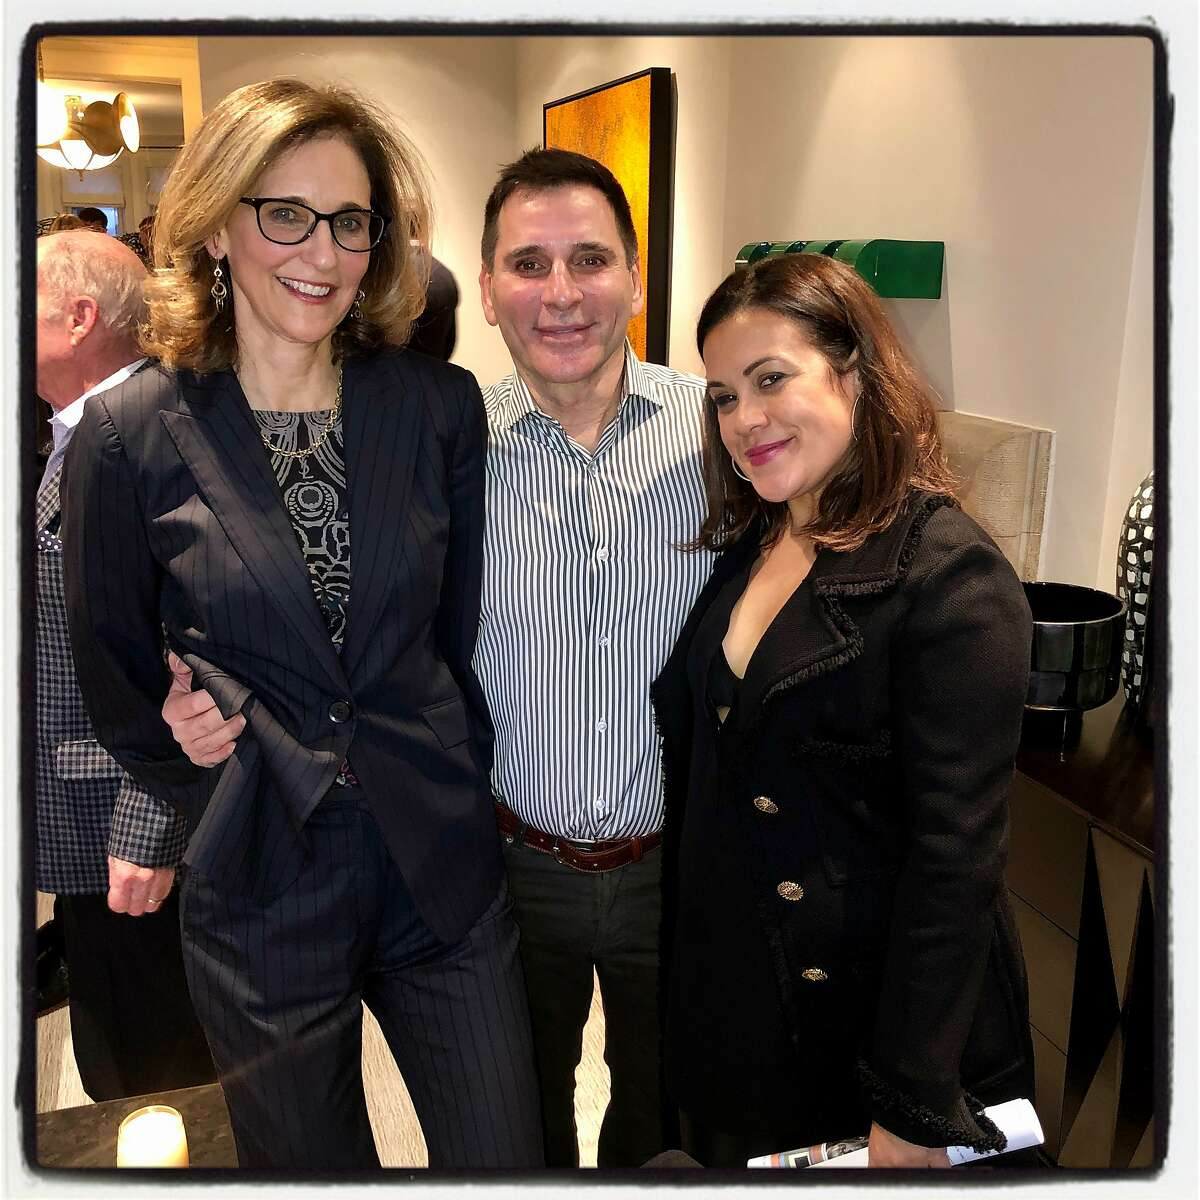 Sotheby's Jennifer Biederbeck (left) with Seth Matarasso and Gabriela Palmieri. Jan. 14. 2020.